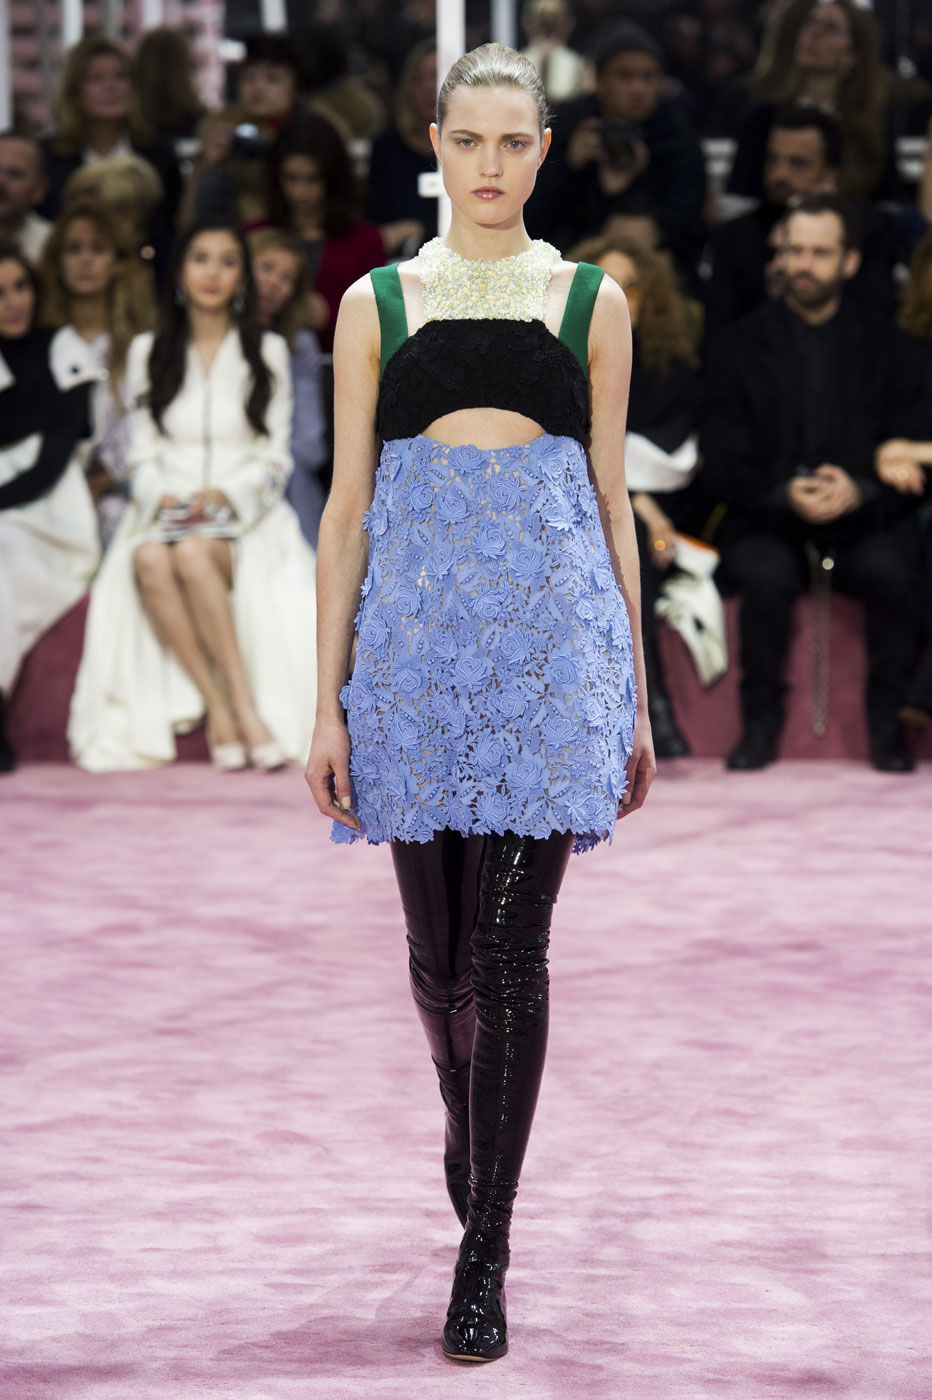 Christian-Dior-fashion-runway-show-haute-couture-paris-spring-summer-2015-the-impression-045